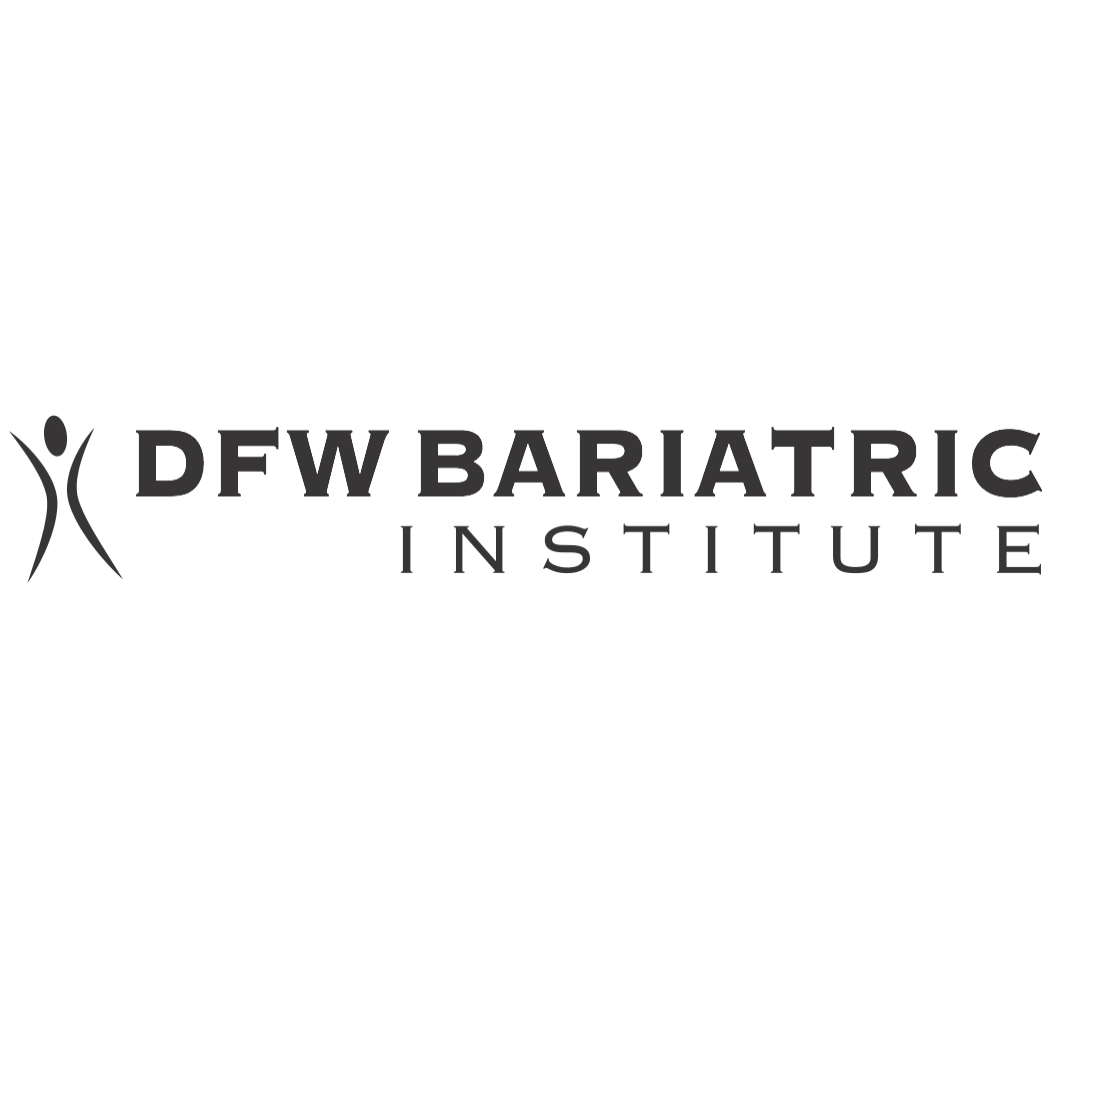 DFW Bariatric Institute